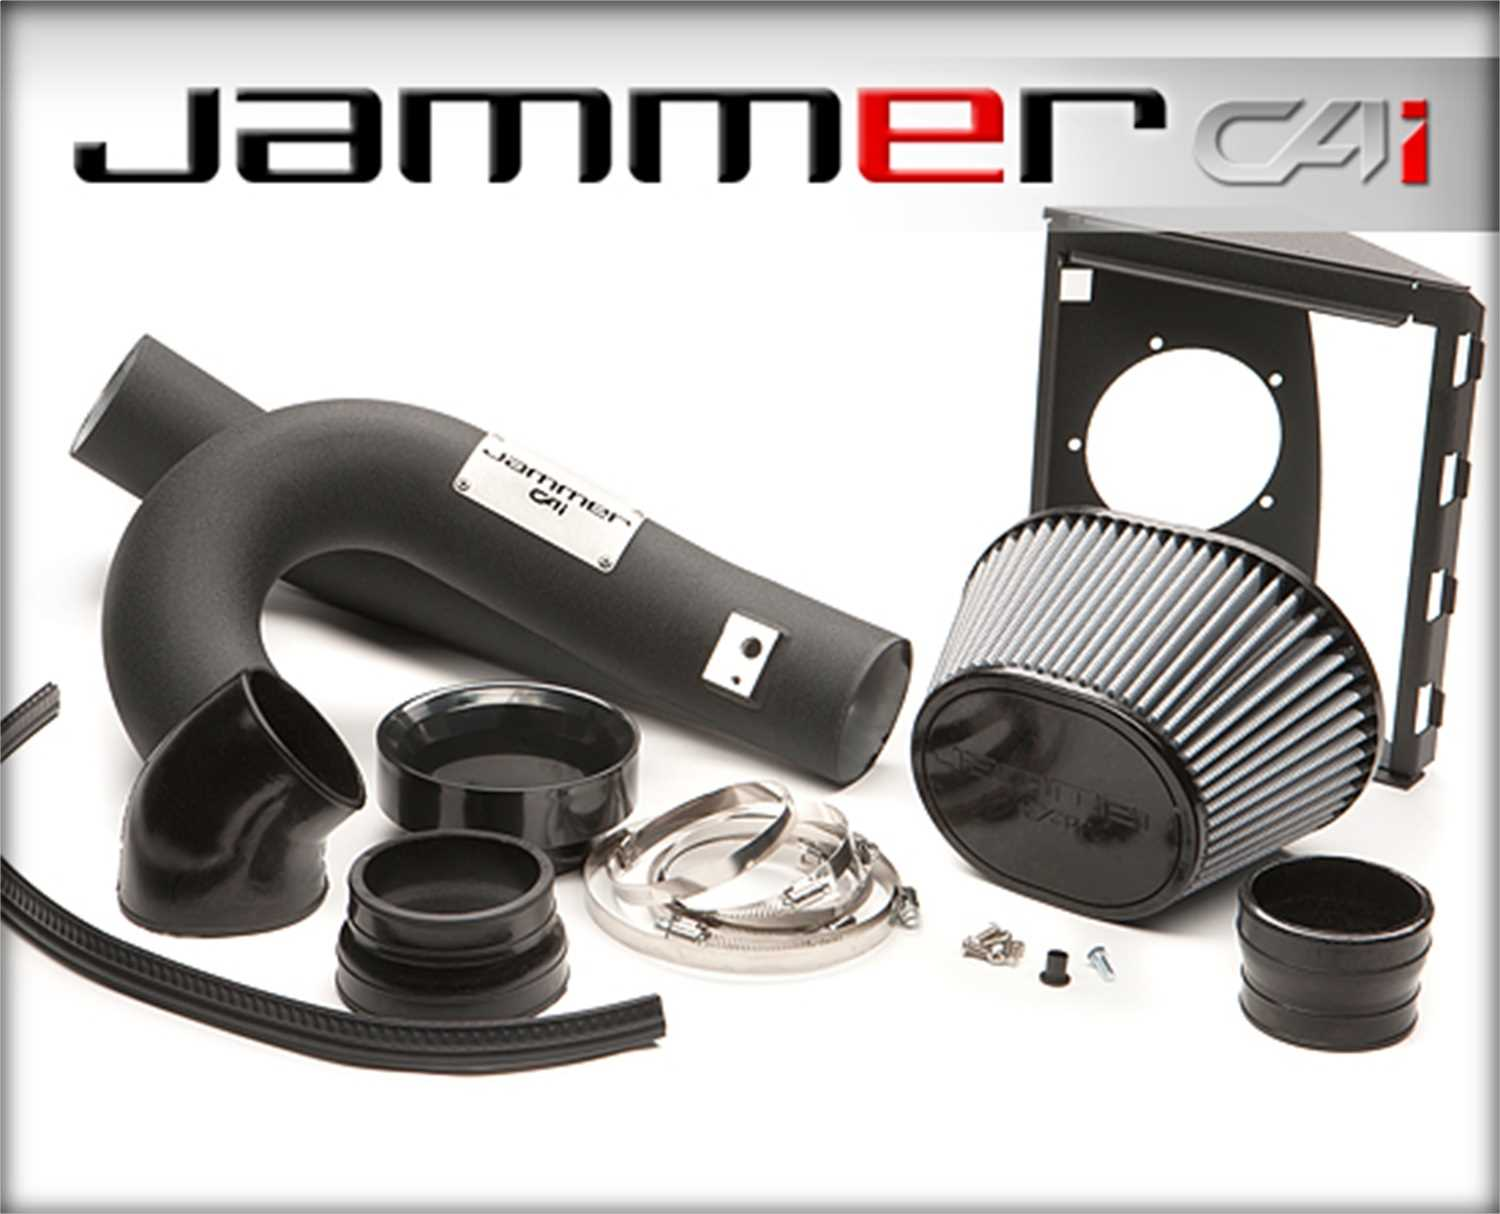 184141-D Edge Products Jammer Cold Air Intake